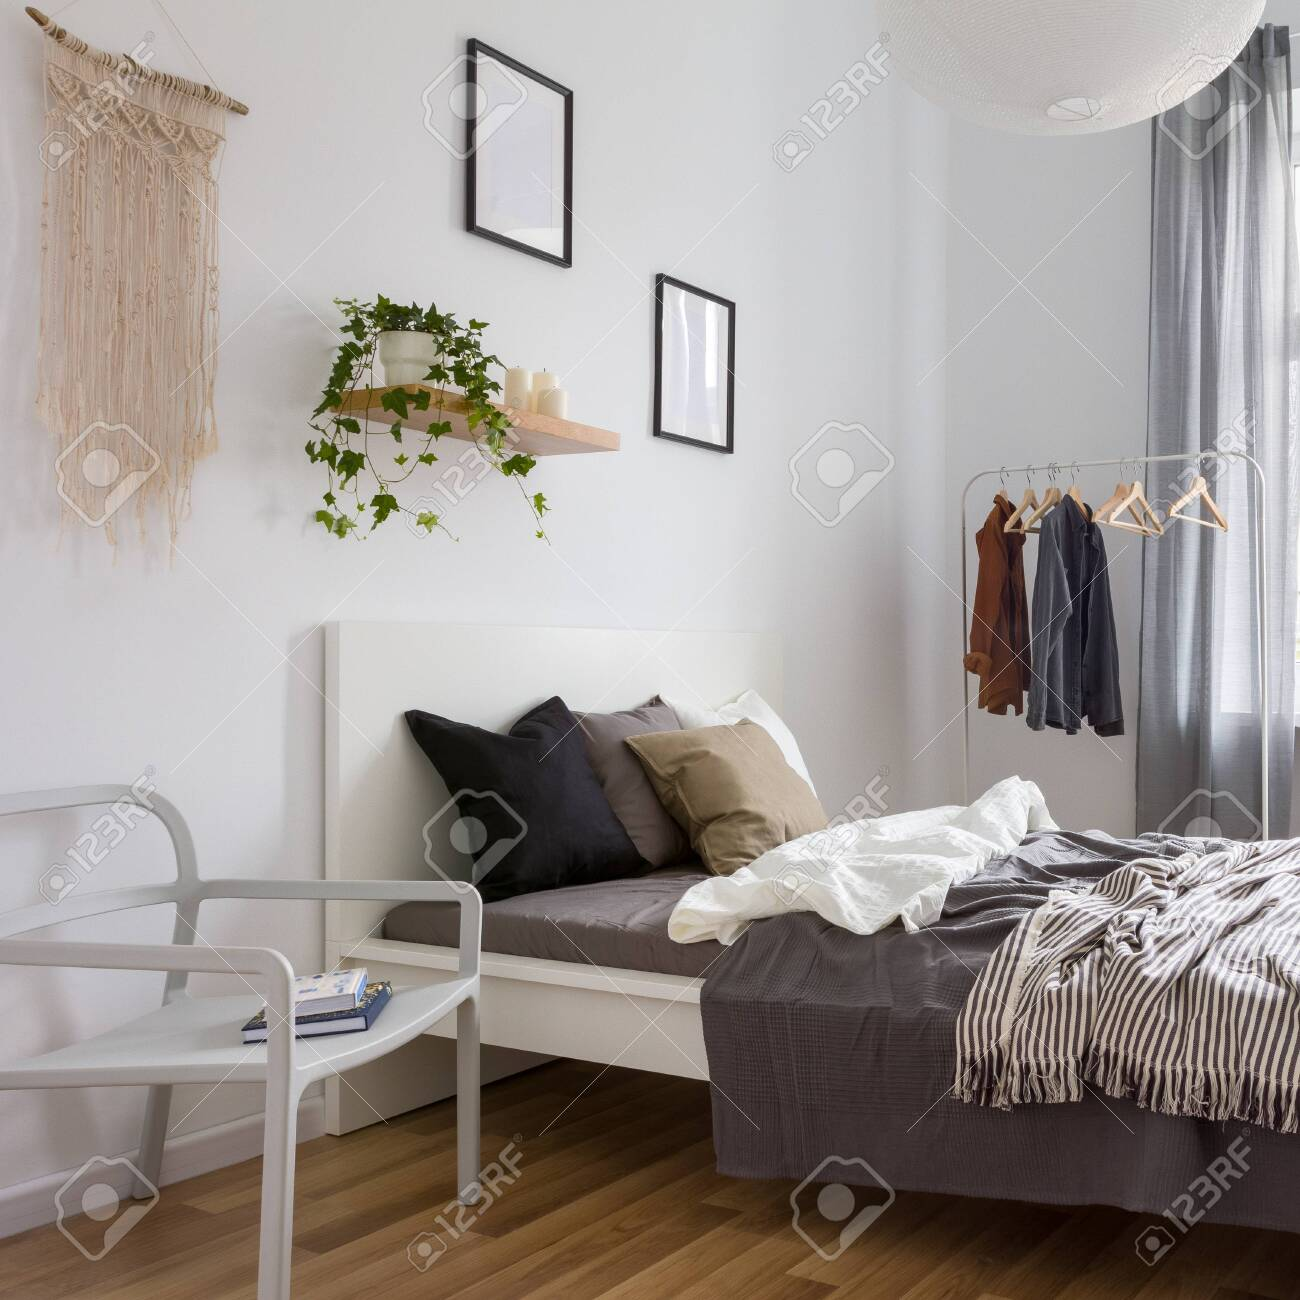 Simple Bedroom With Double Bed Clothes Rack And Wall Decoration